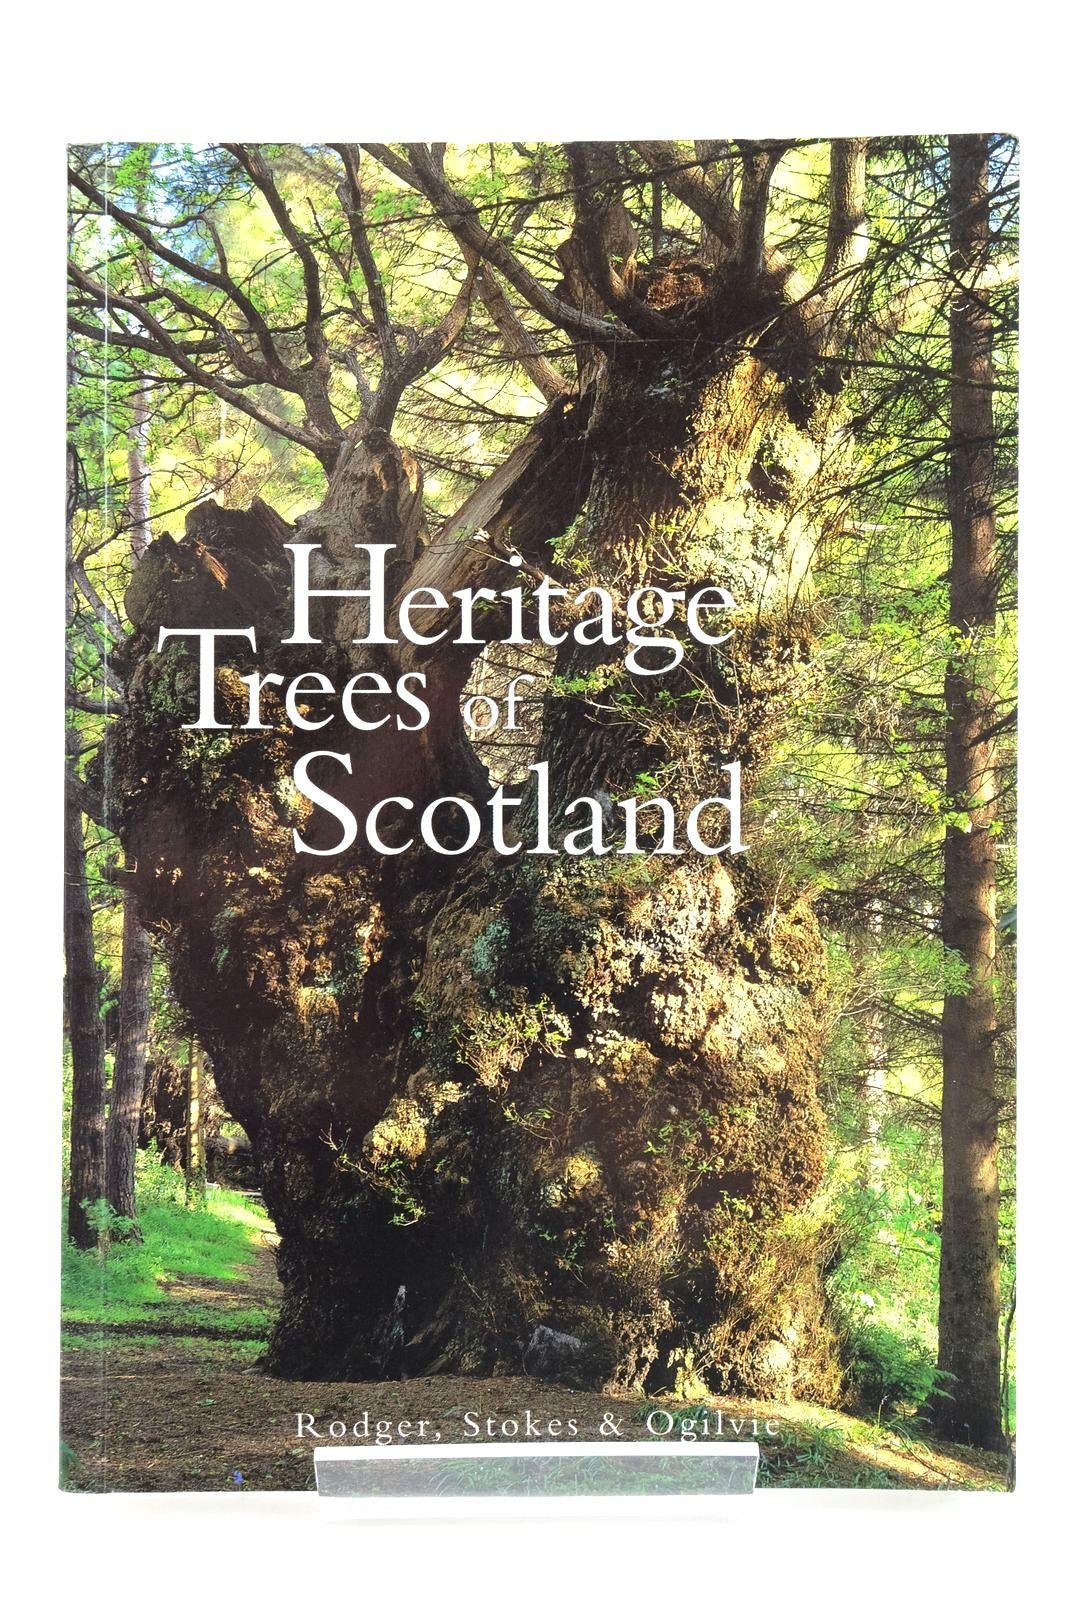 Photo of THE HERITAGE TREES OF SCOTLAND written by Stokes, Jon Rodger, Donald published by The Tree Council (STOCK CODE: 2135406)  for sale by Stella & Rose's Books